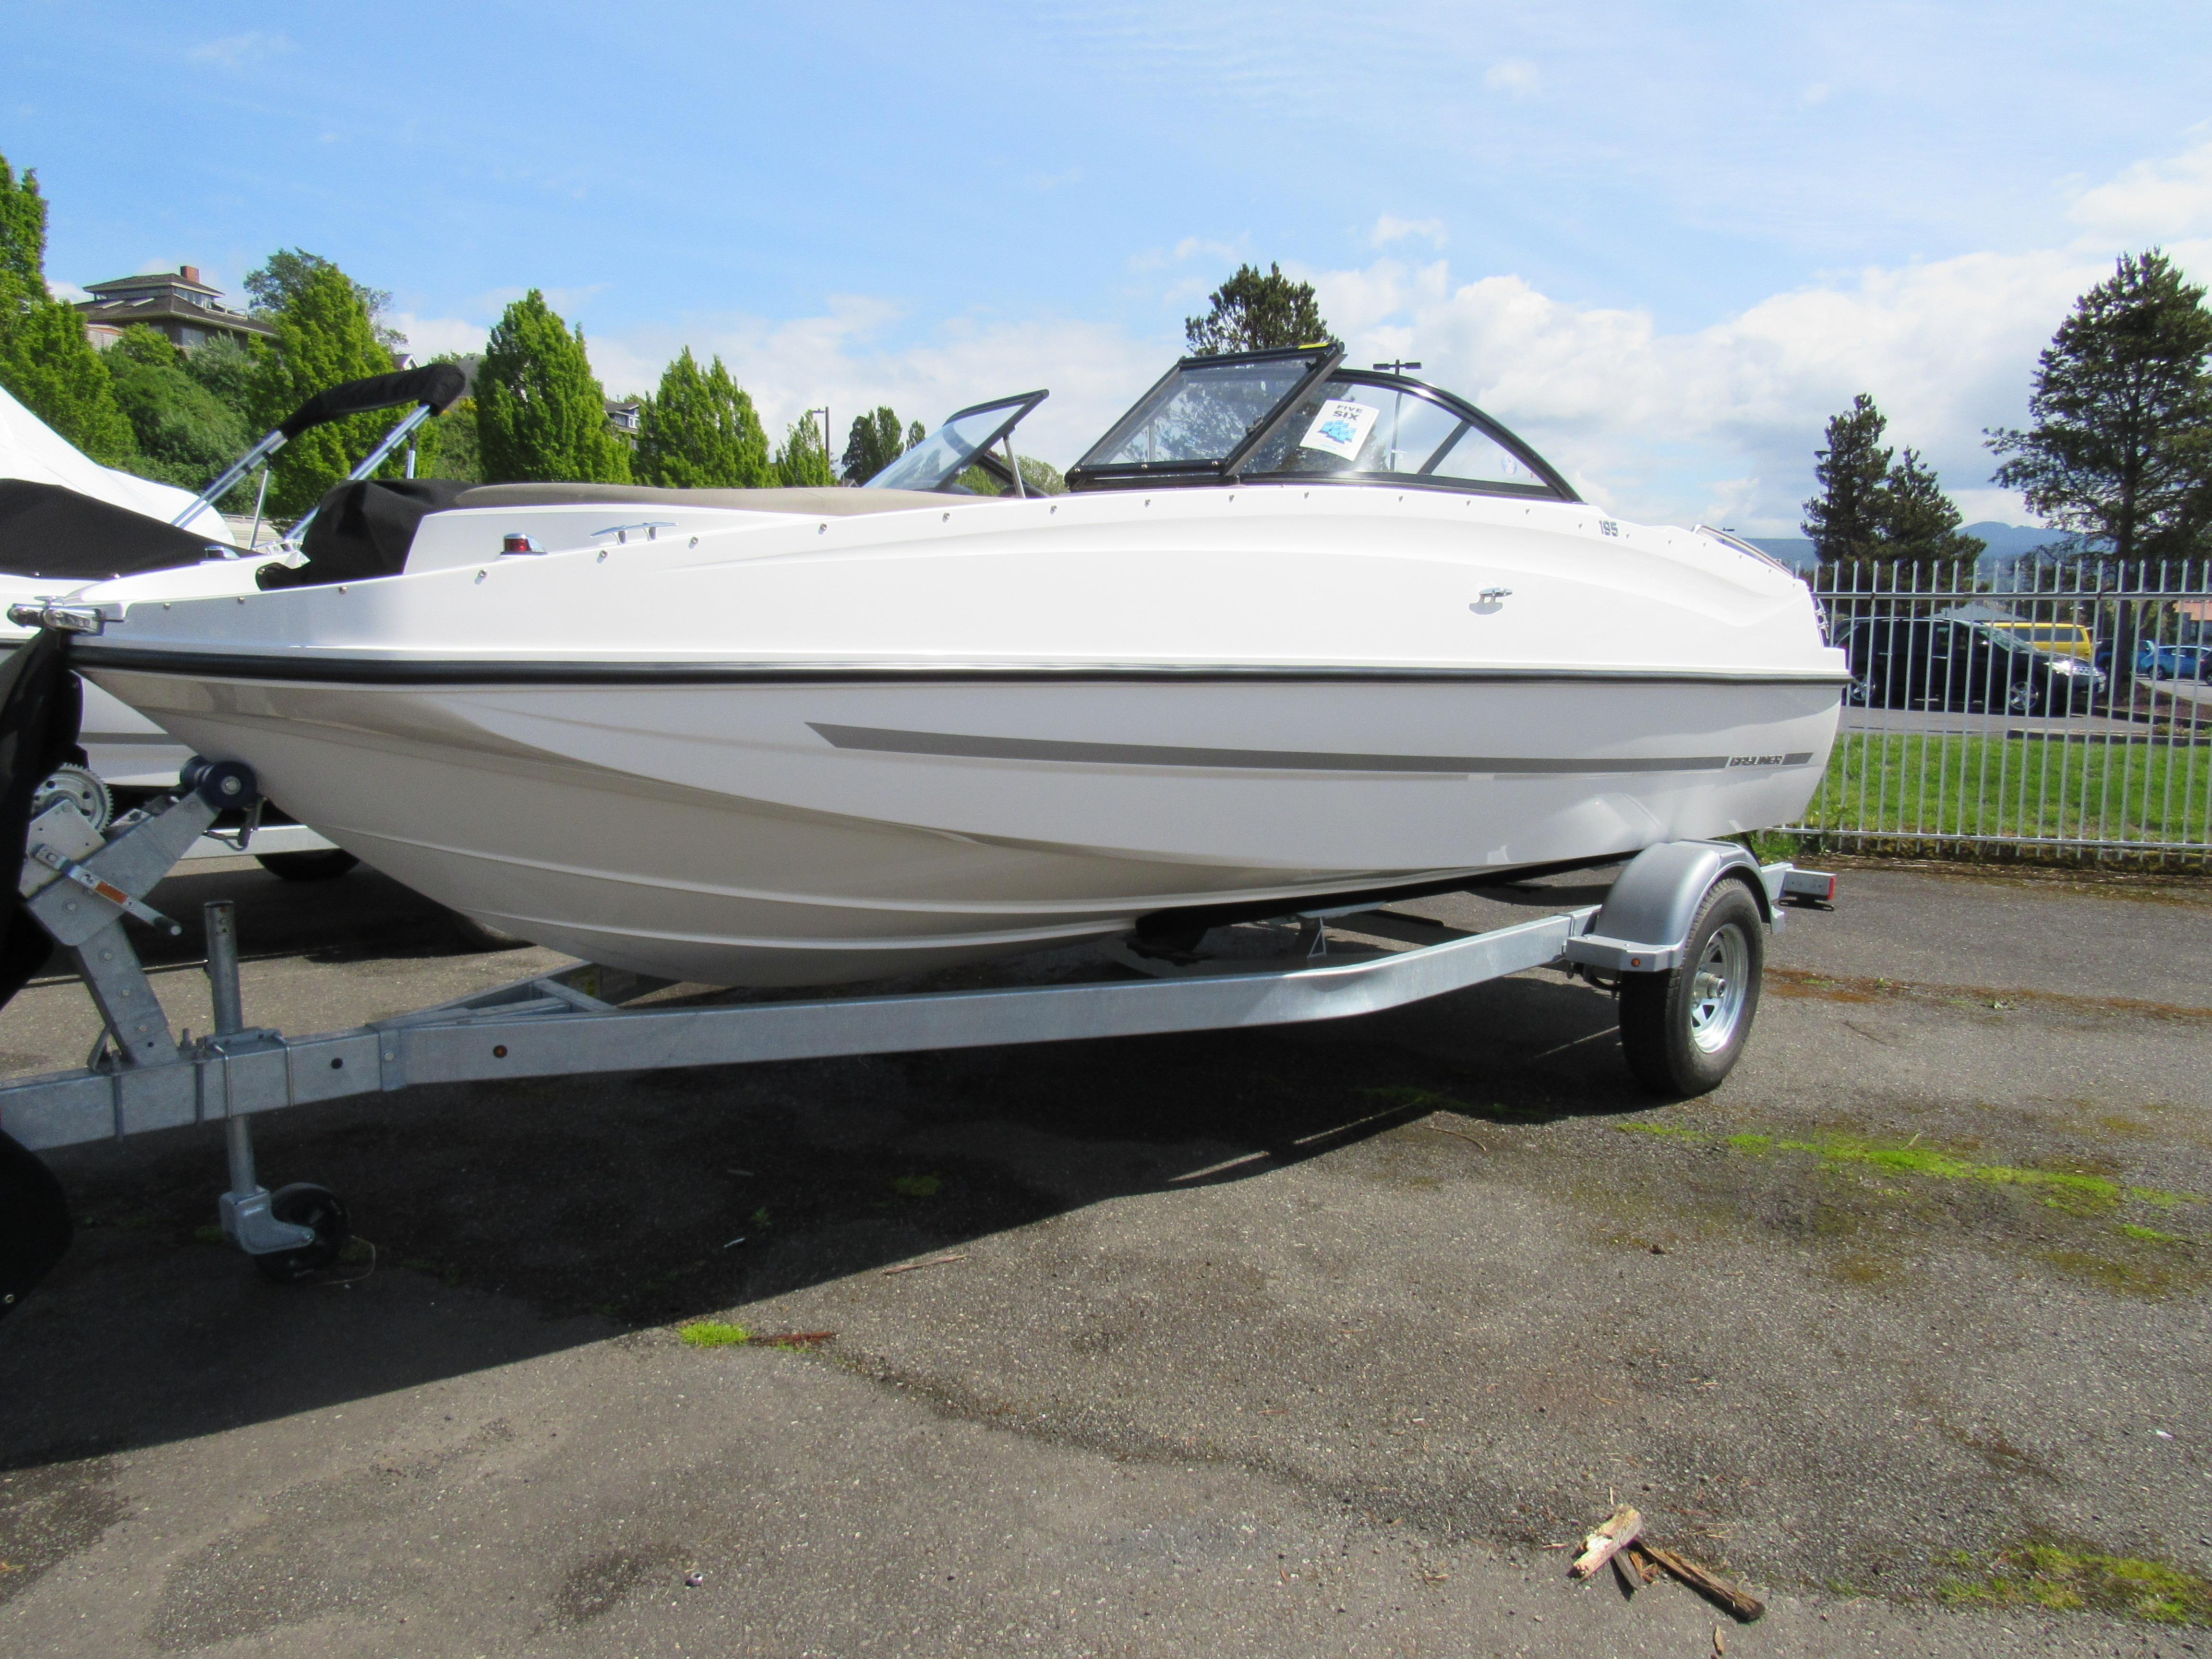 2016 Bayliner 195 Deck Boat Power New And Used Boats For Sale